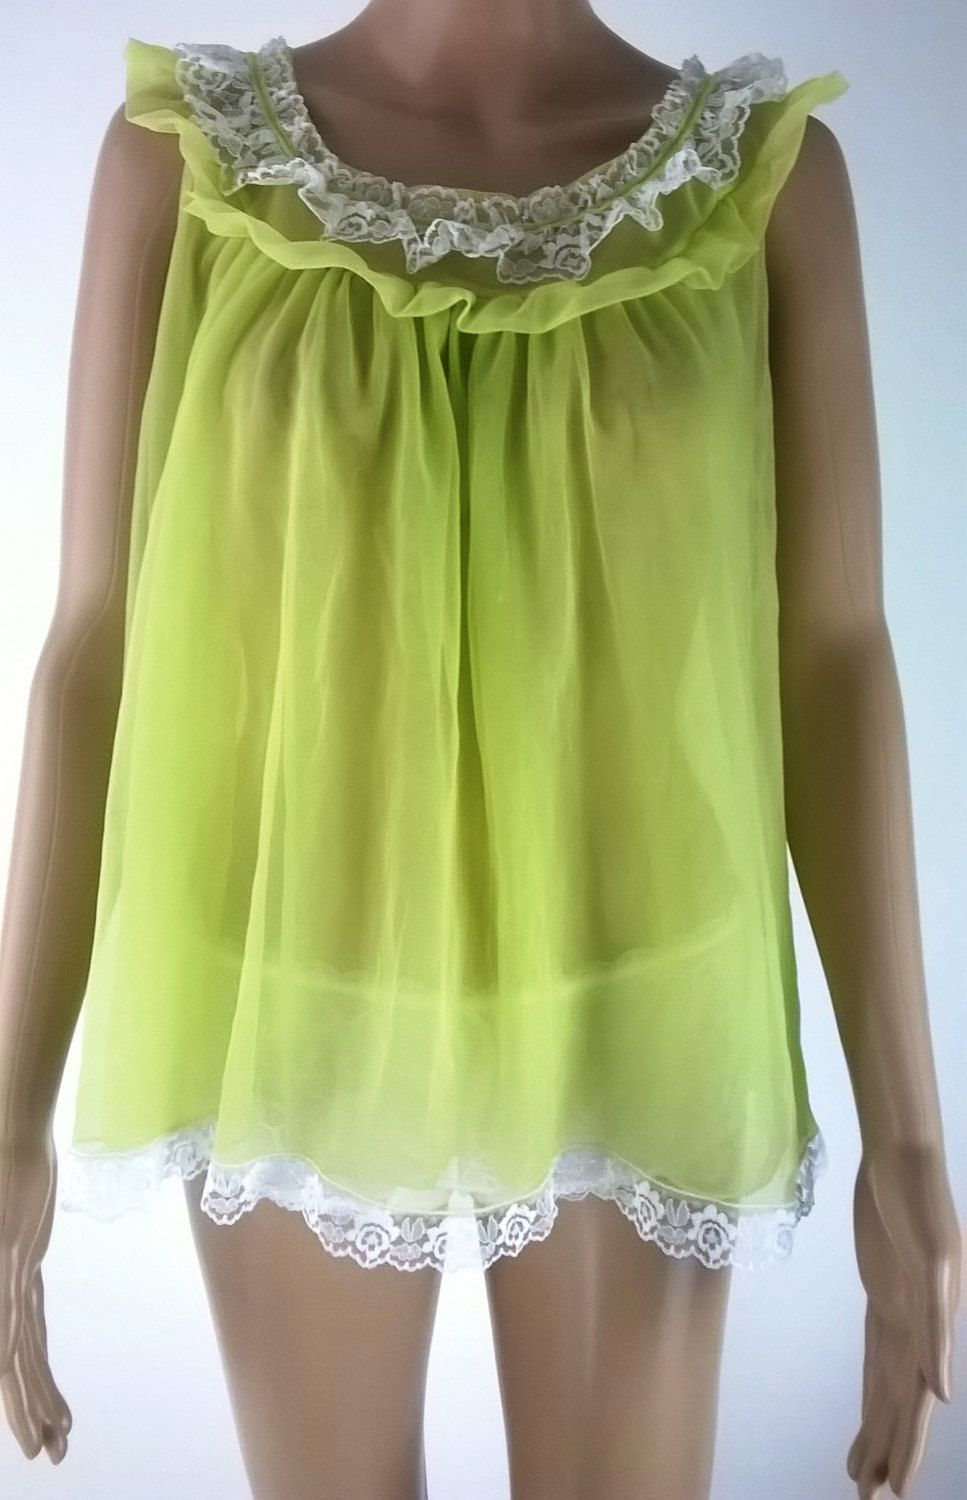 1e81ceebd8e Vintage Babydoll Nightie Negligee 1960s Sheer Lime Green Frilly Chiffon  Vintage Lingerie Size Large 42 44 60s Lace Nightgown by RadicalMaudVintage  on Etsy